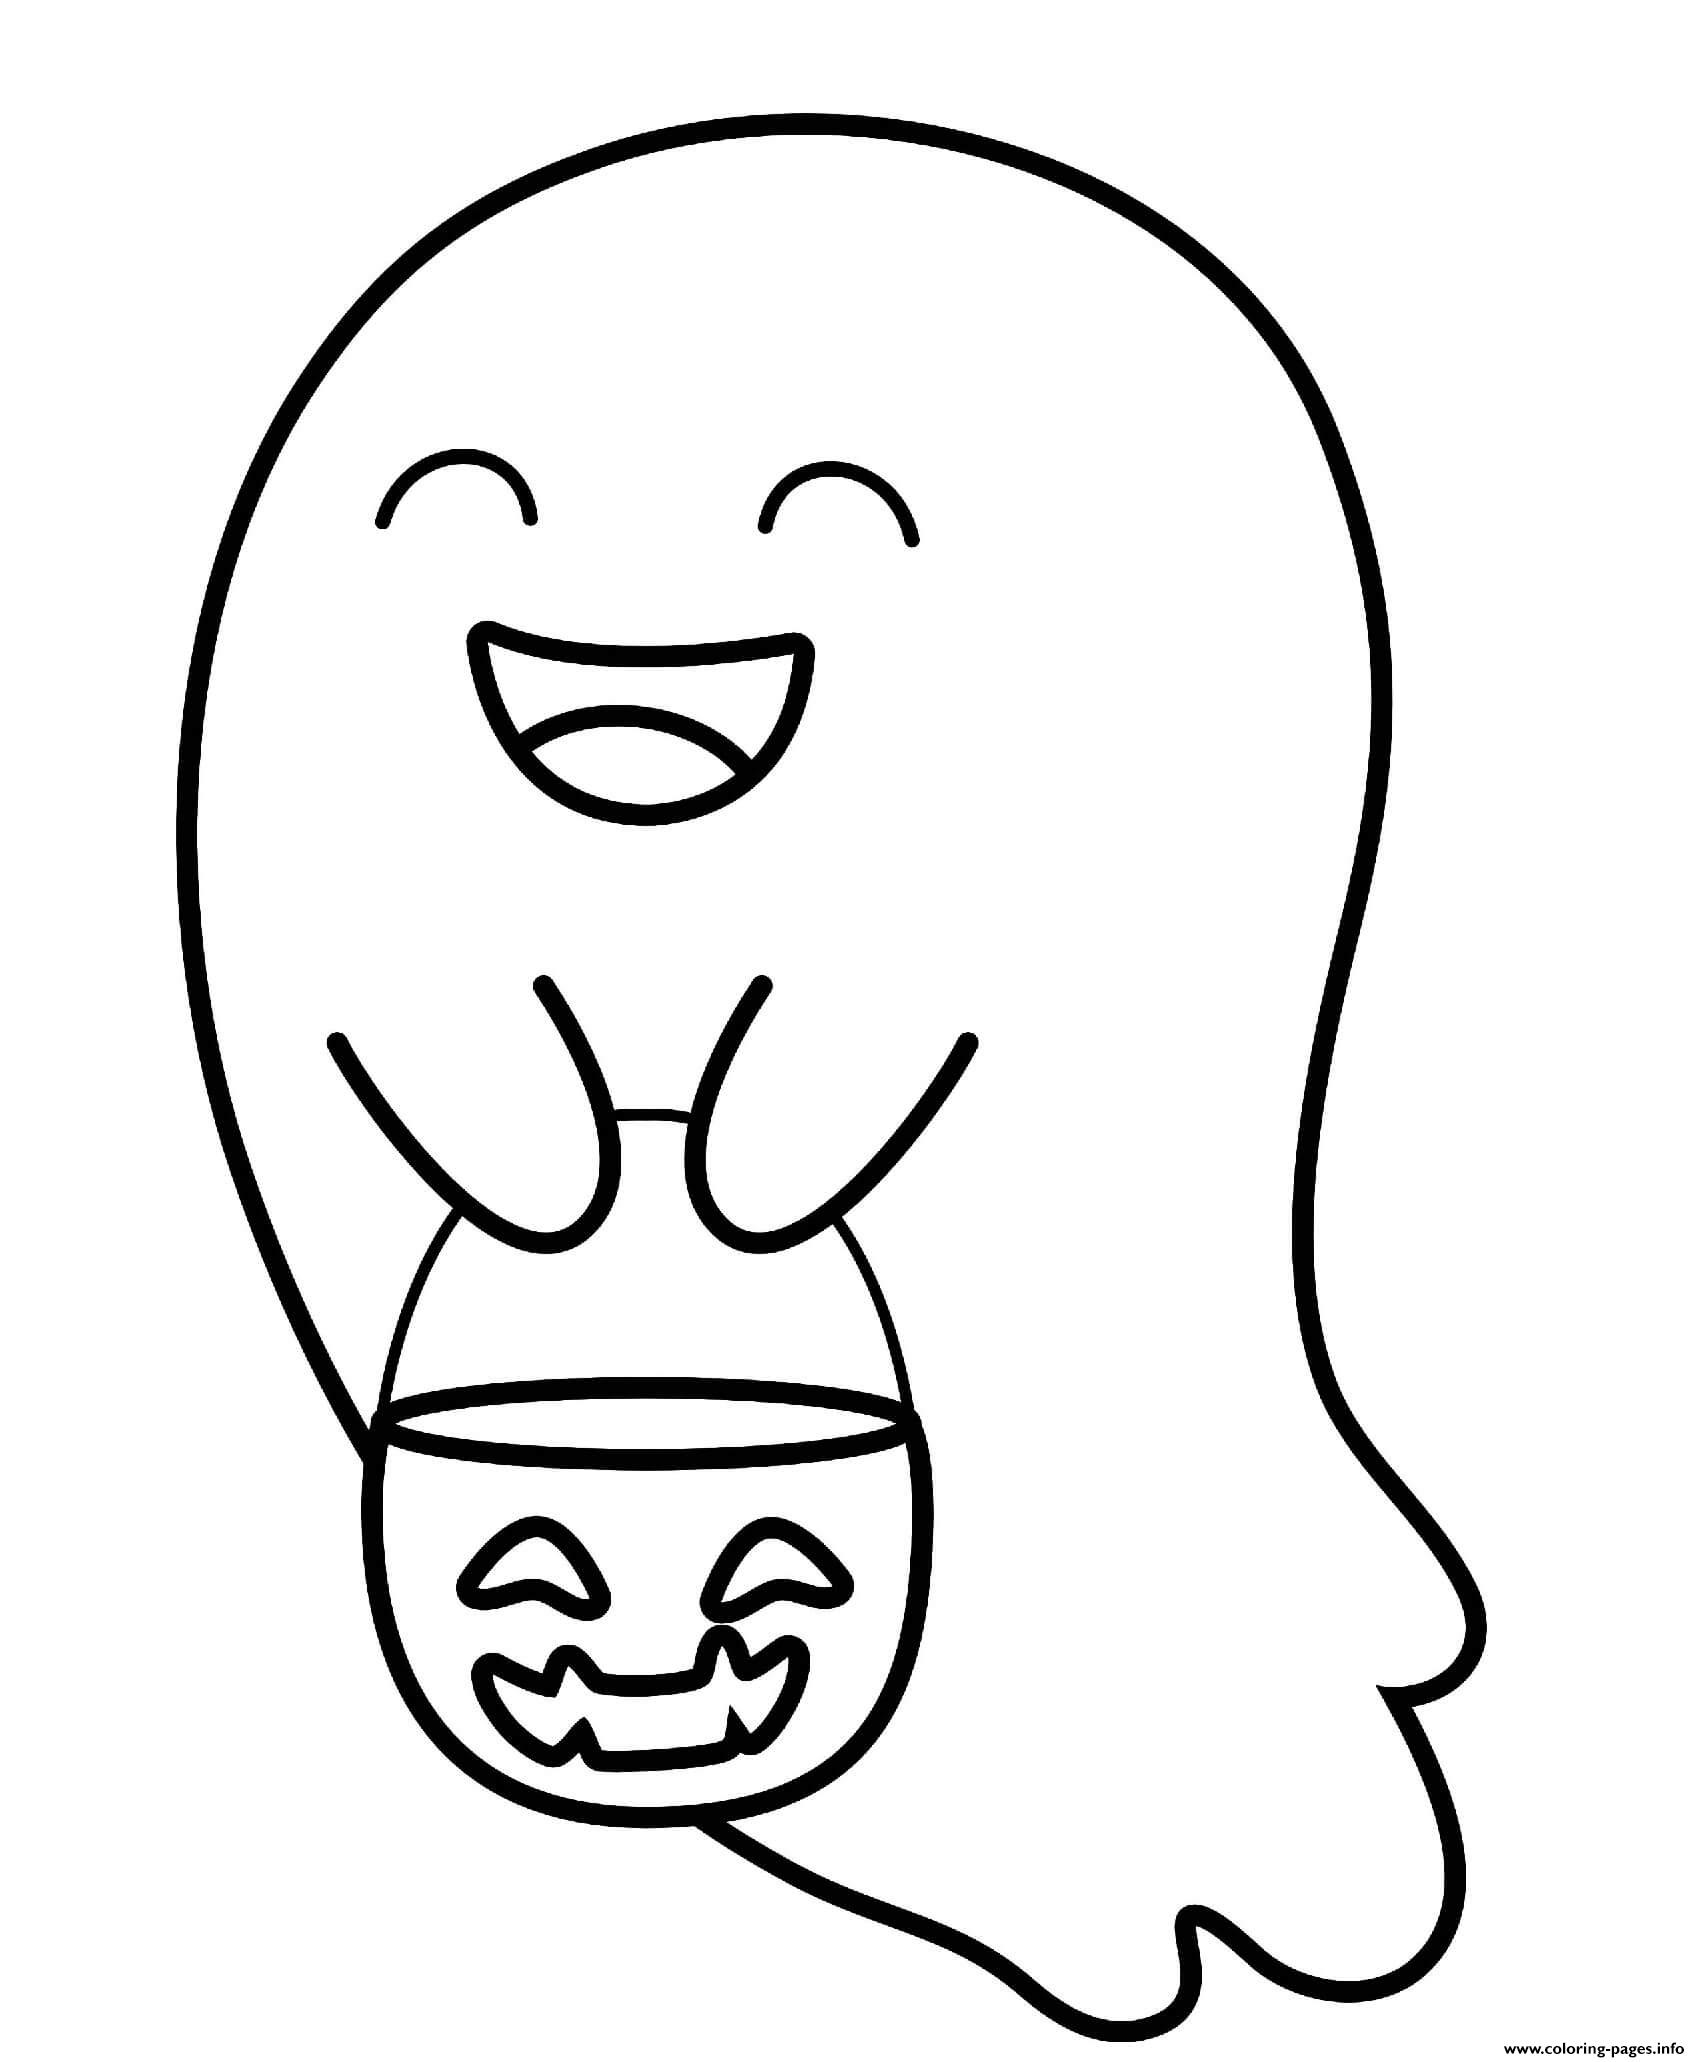 Halloween Trick Treat Cute Ghost Coloring Pages Printable